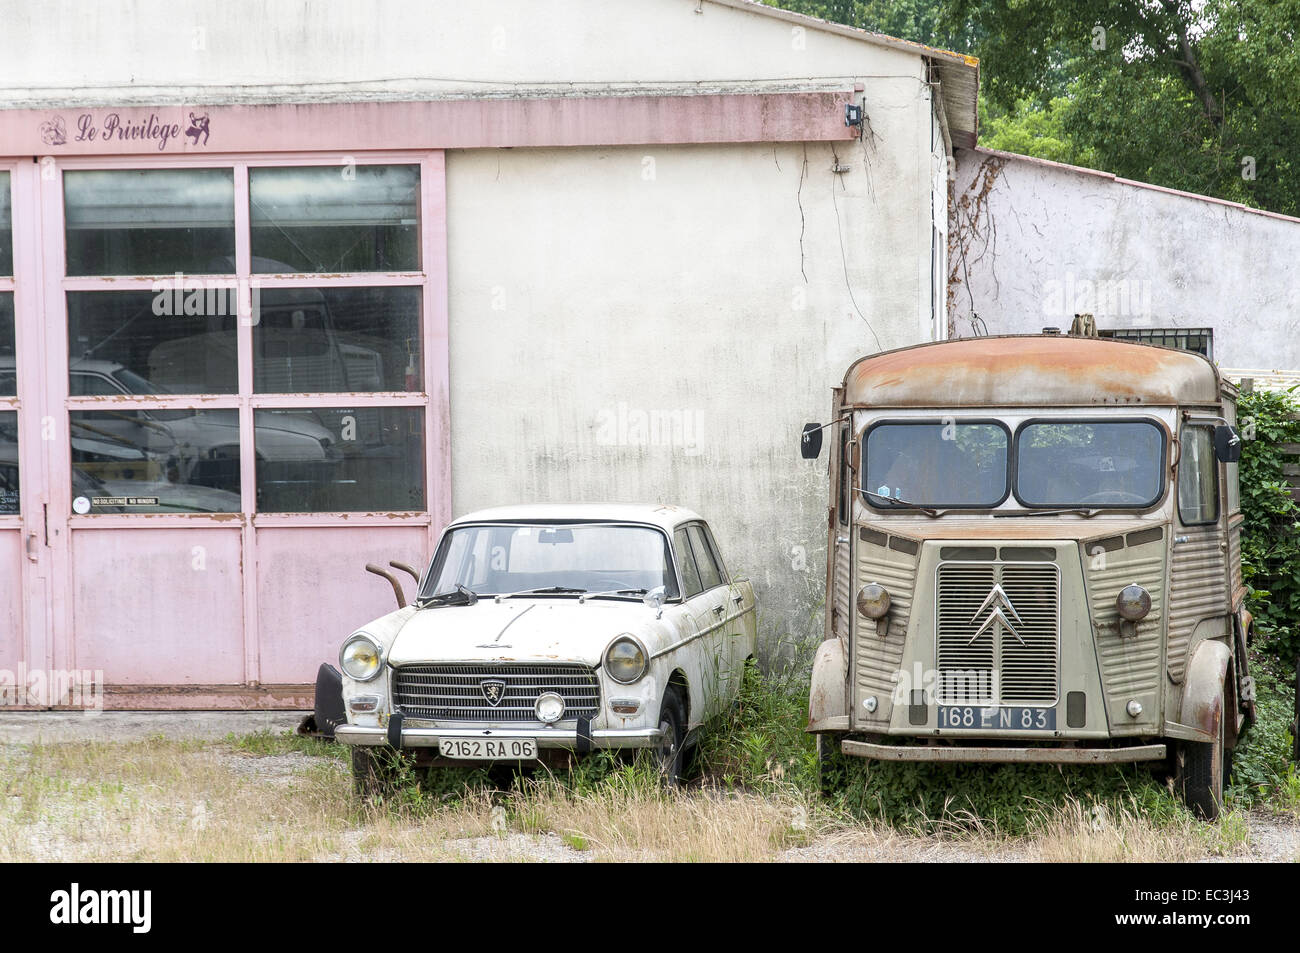 0ld cars - Stock Image